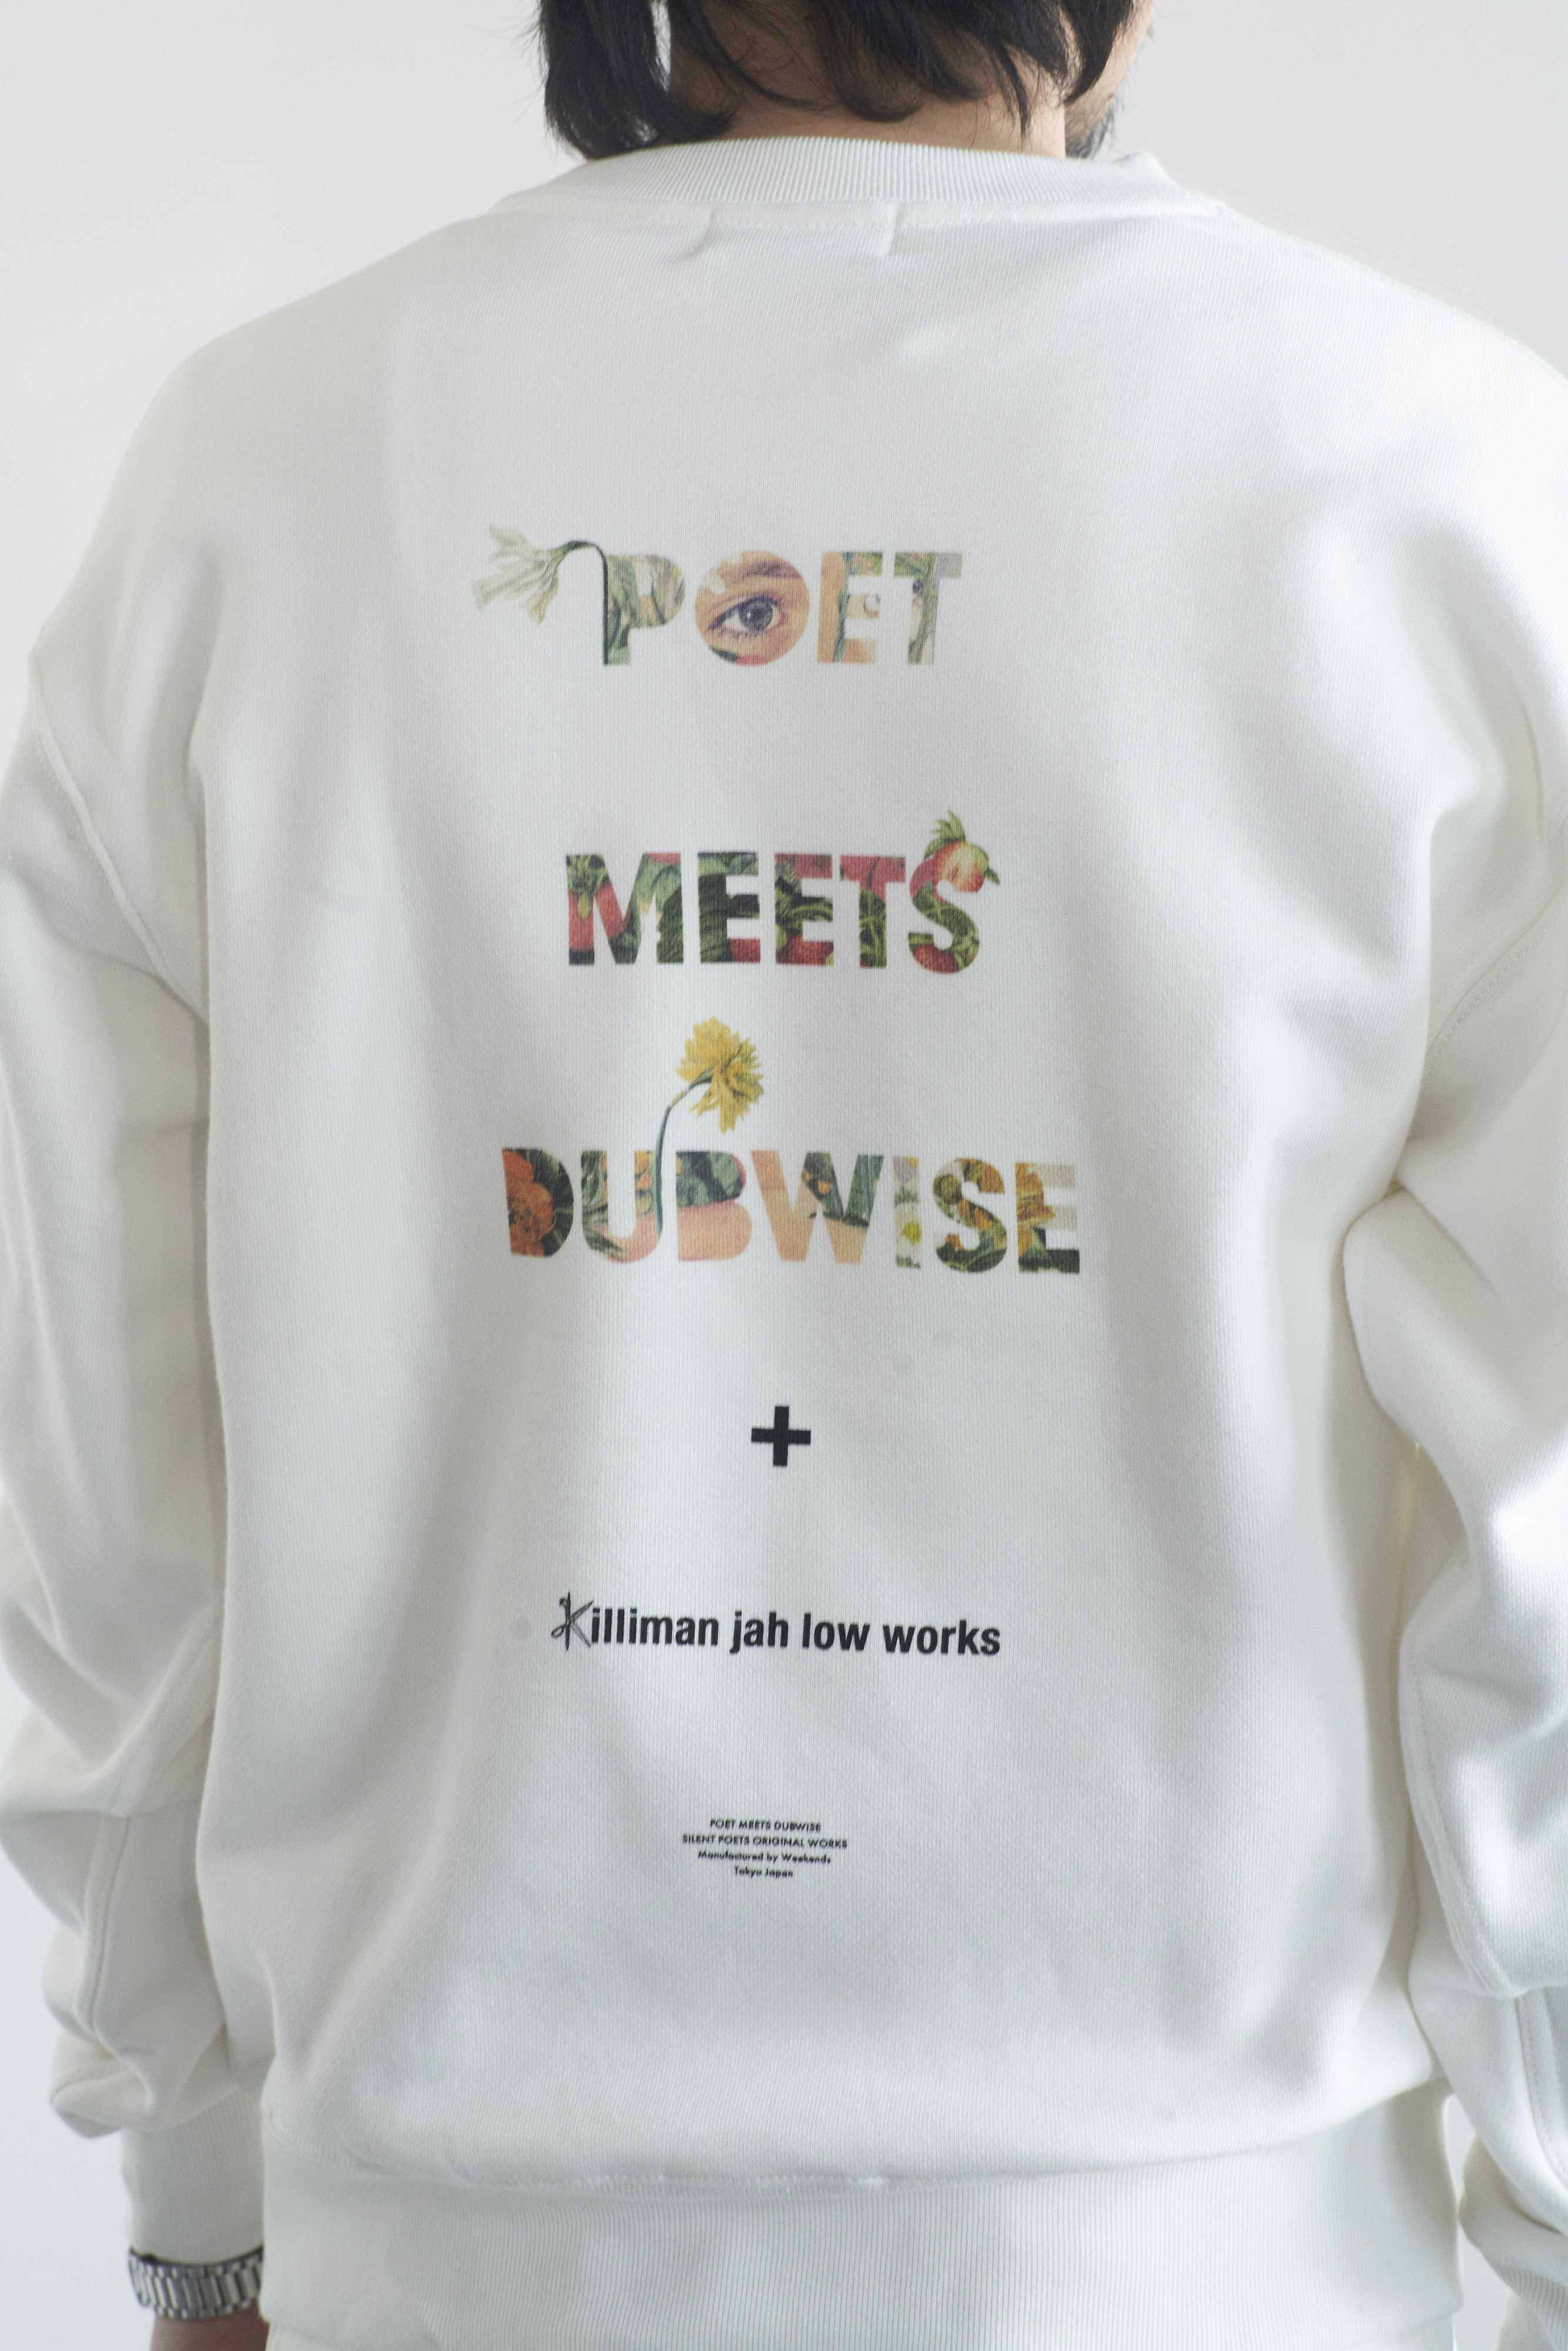 POET MEETS DUBWISE Killiman Jah Low Works PMD Logo Collage Inkjet Heavy Weight Sweat